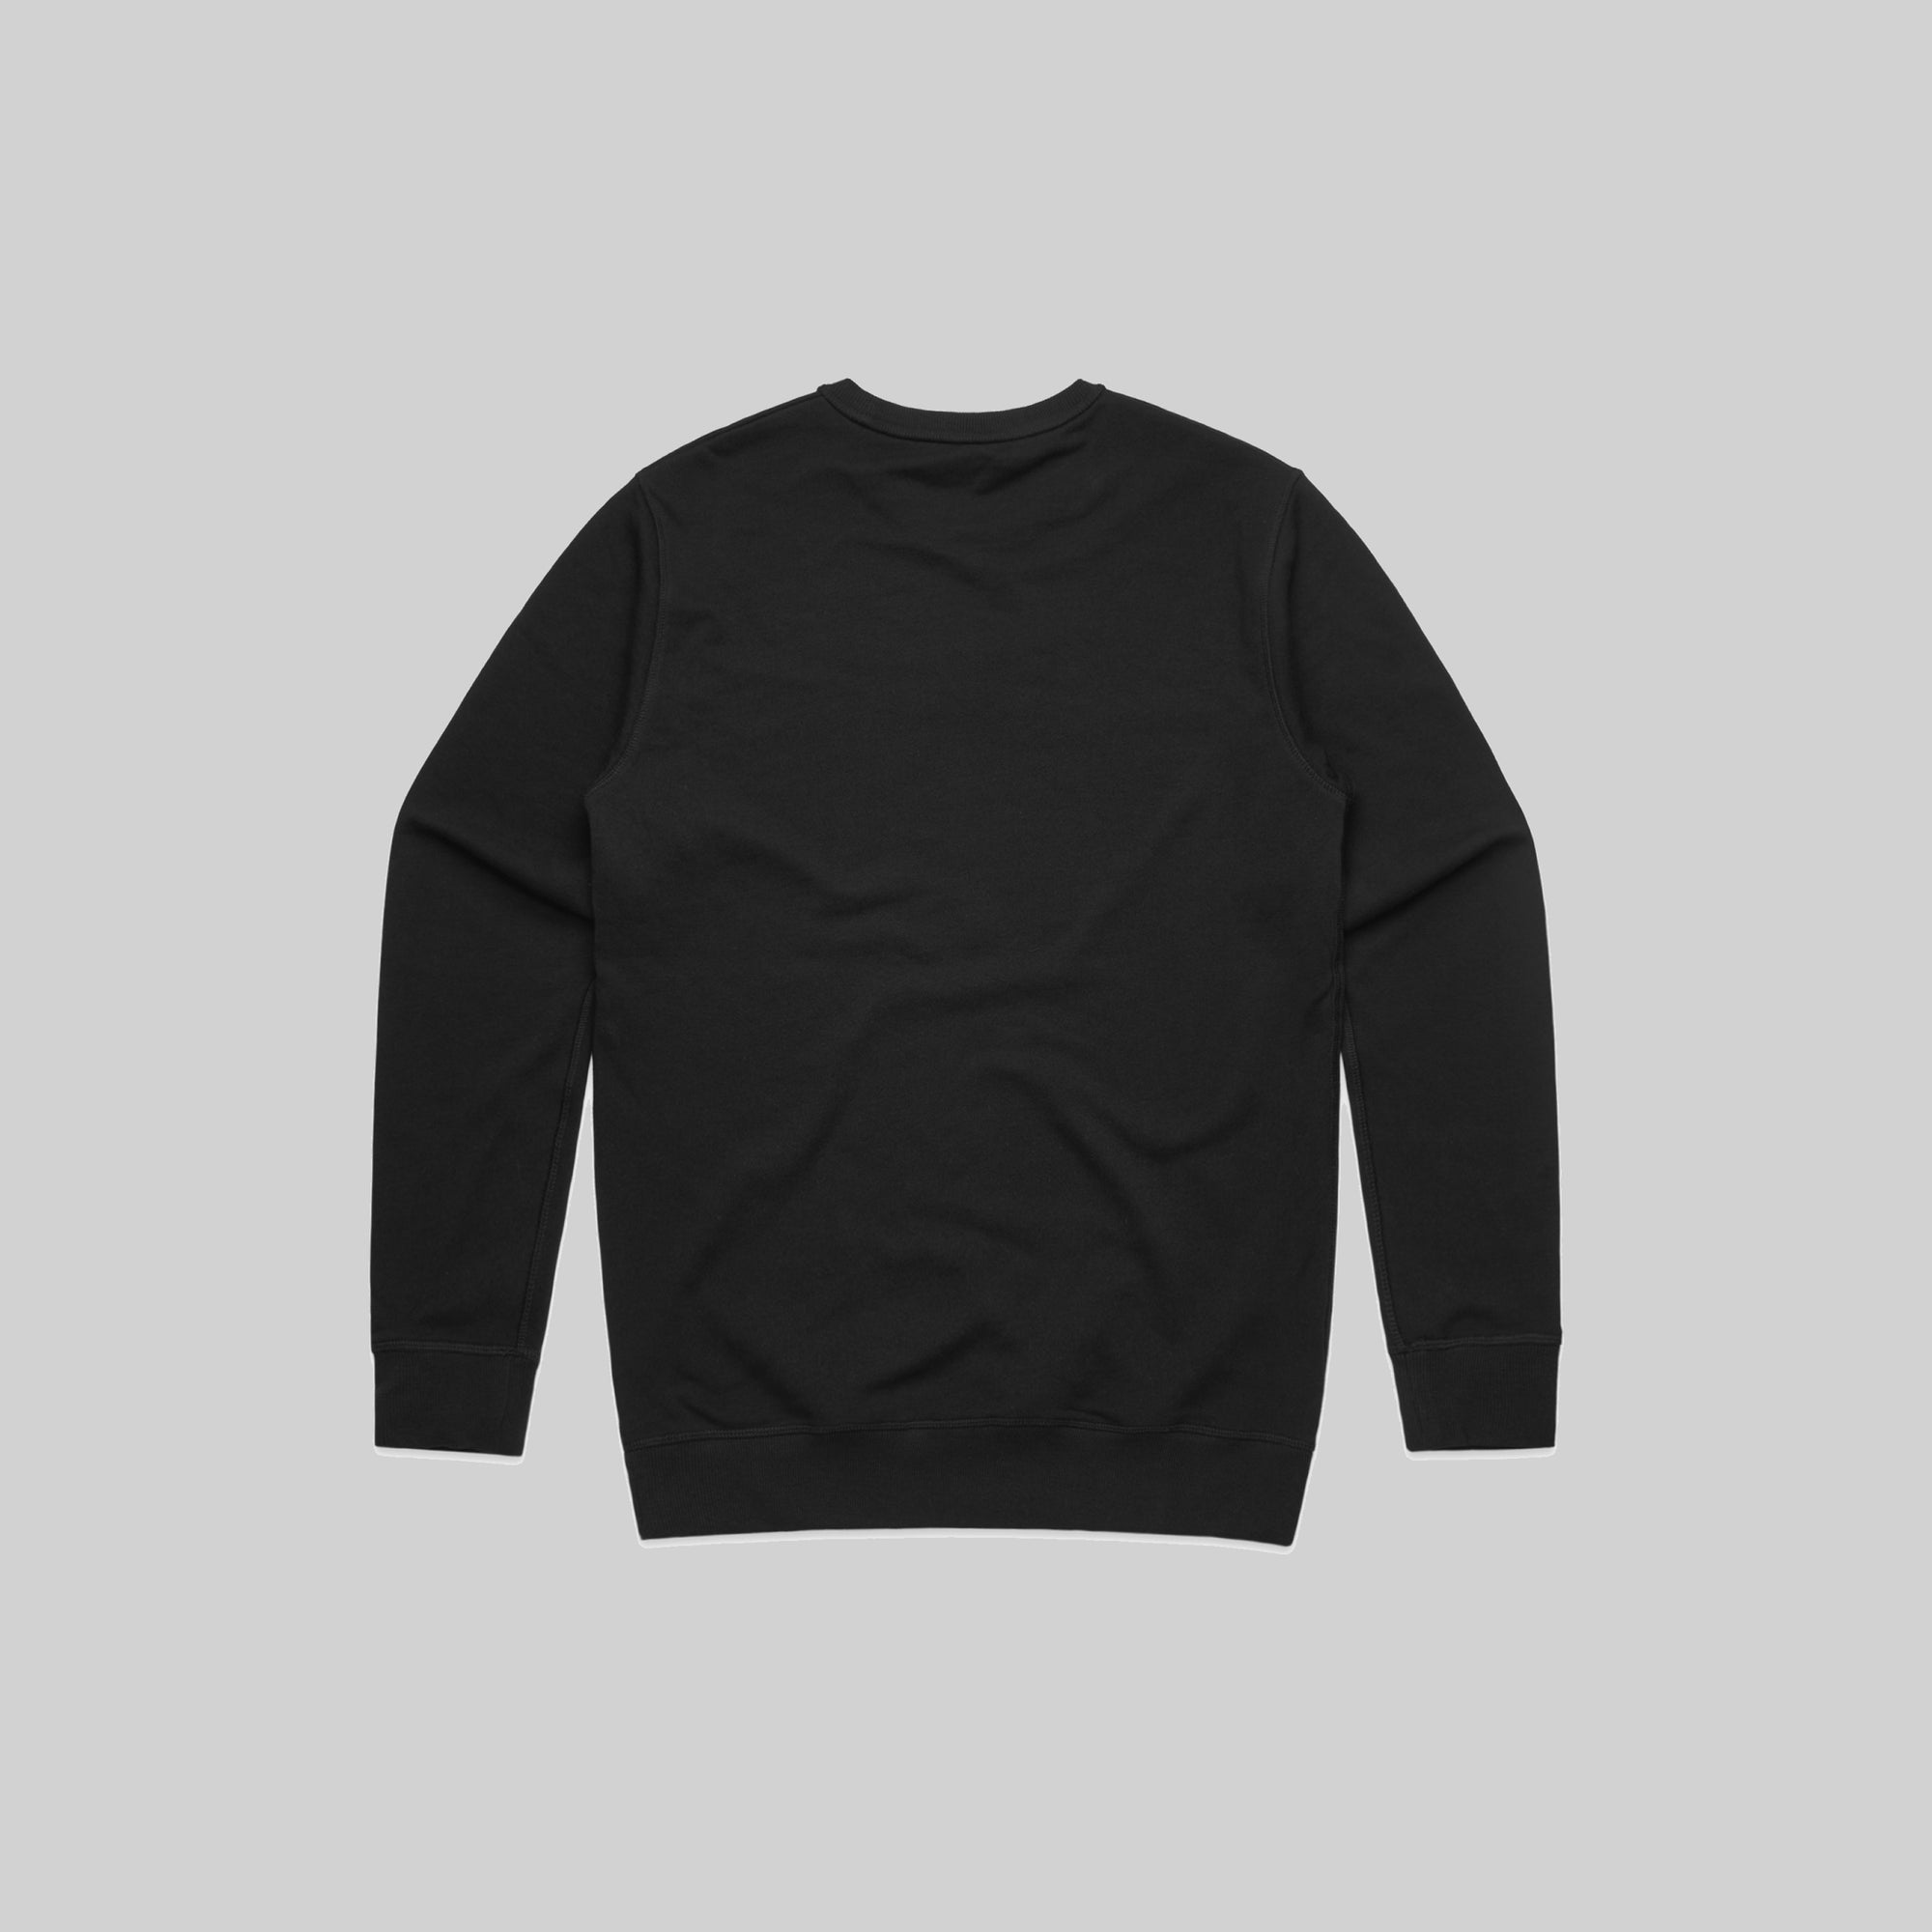 Mens Spread Smiles Not Germs Crew Black